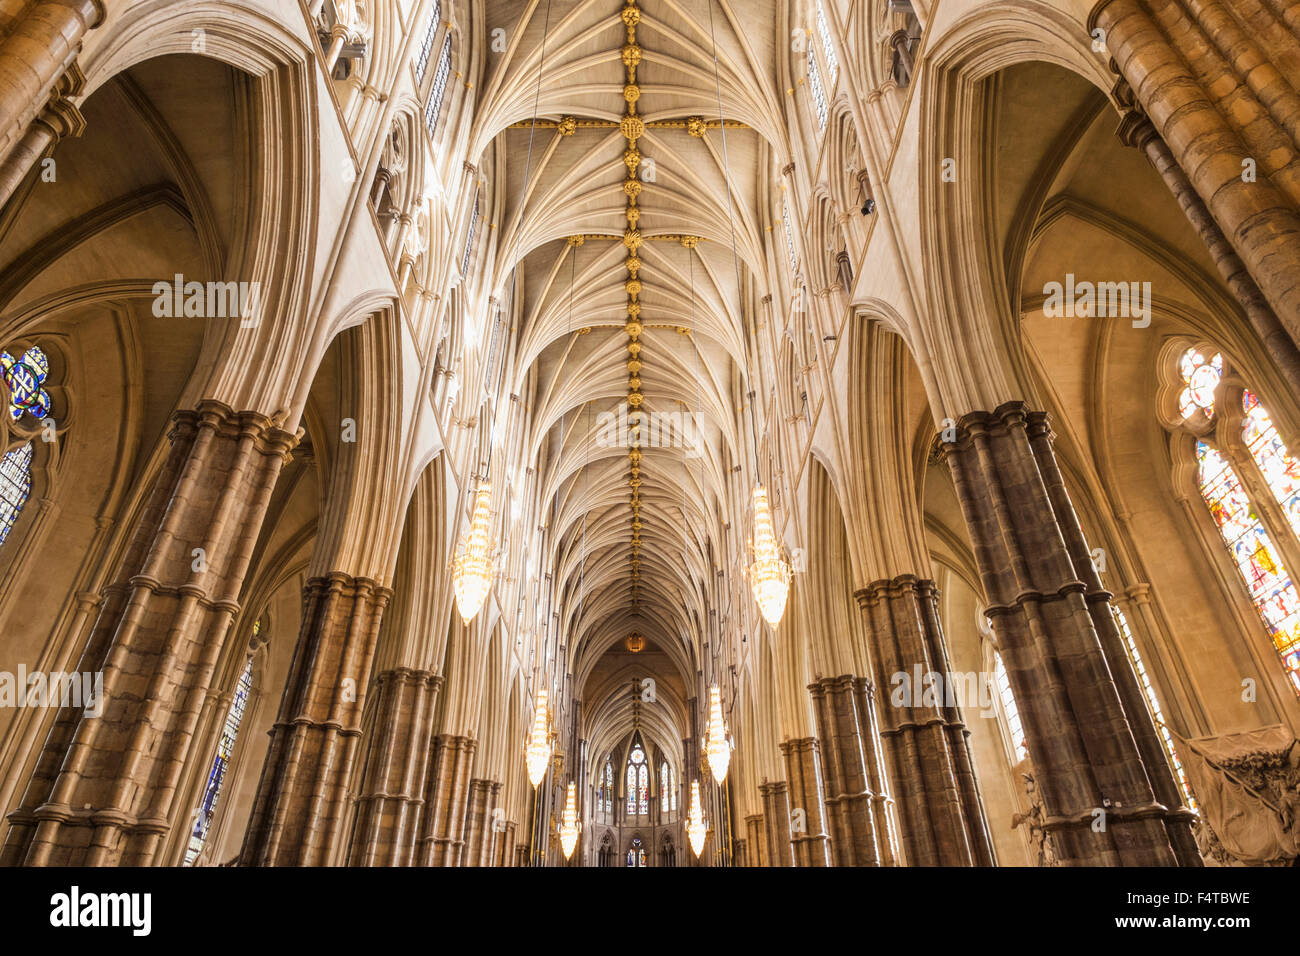 England, London, Westminster Abbey, das Kirchenschiff Stockbild